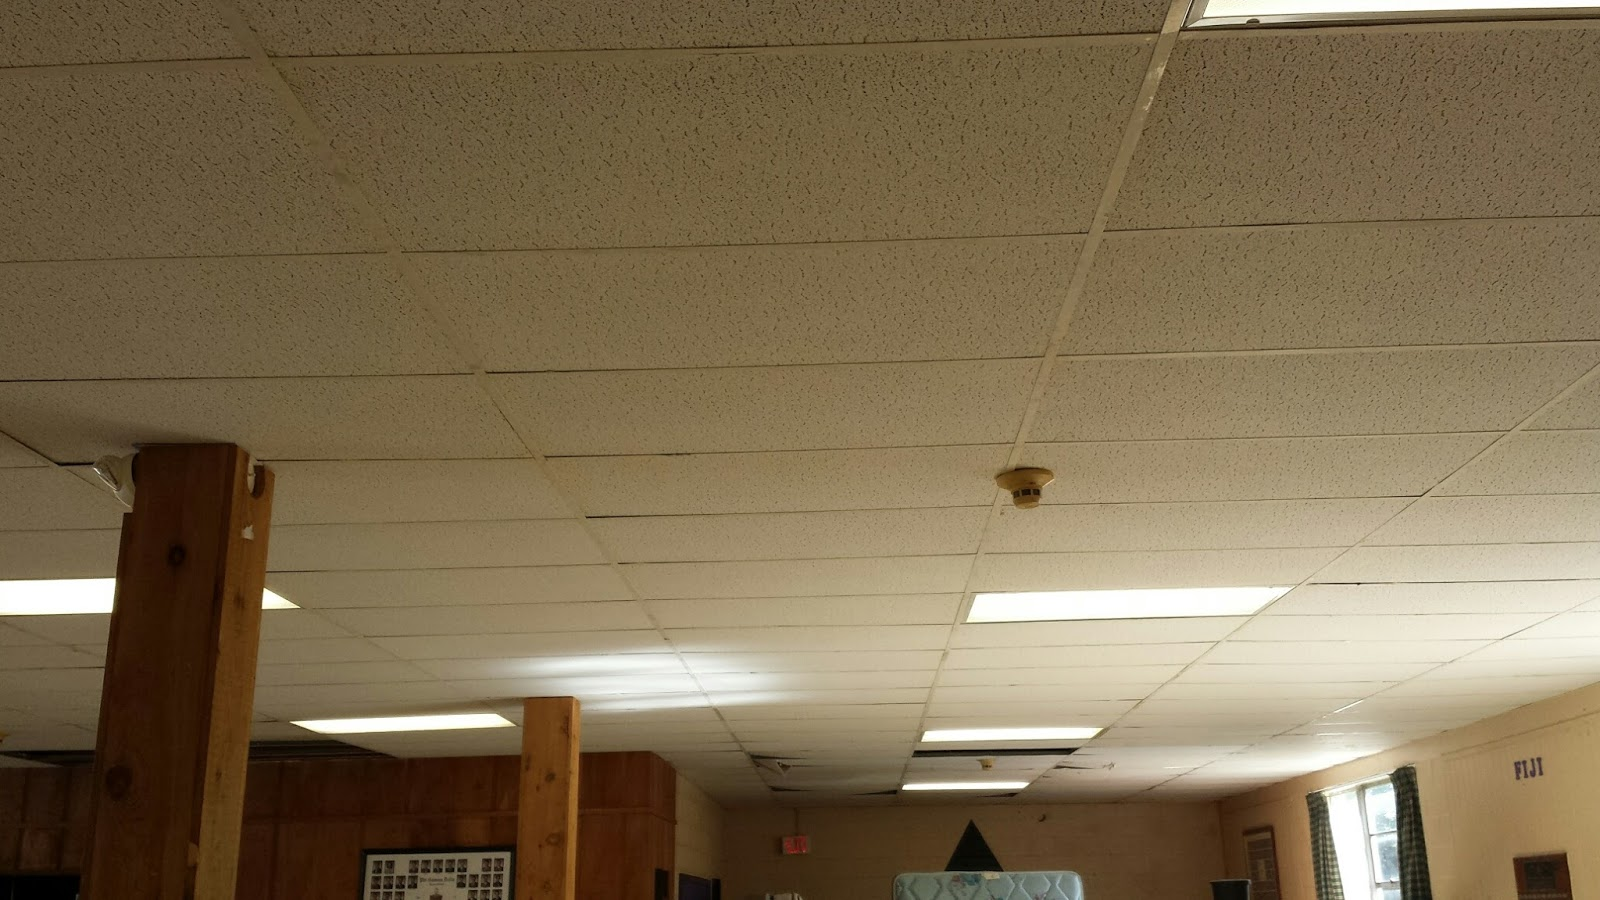 1000 Images About Cieling Tiles On Pinterest Ceiling Tiles Office Lighting And Dropped Ceiling